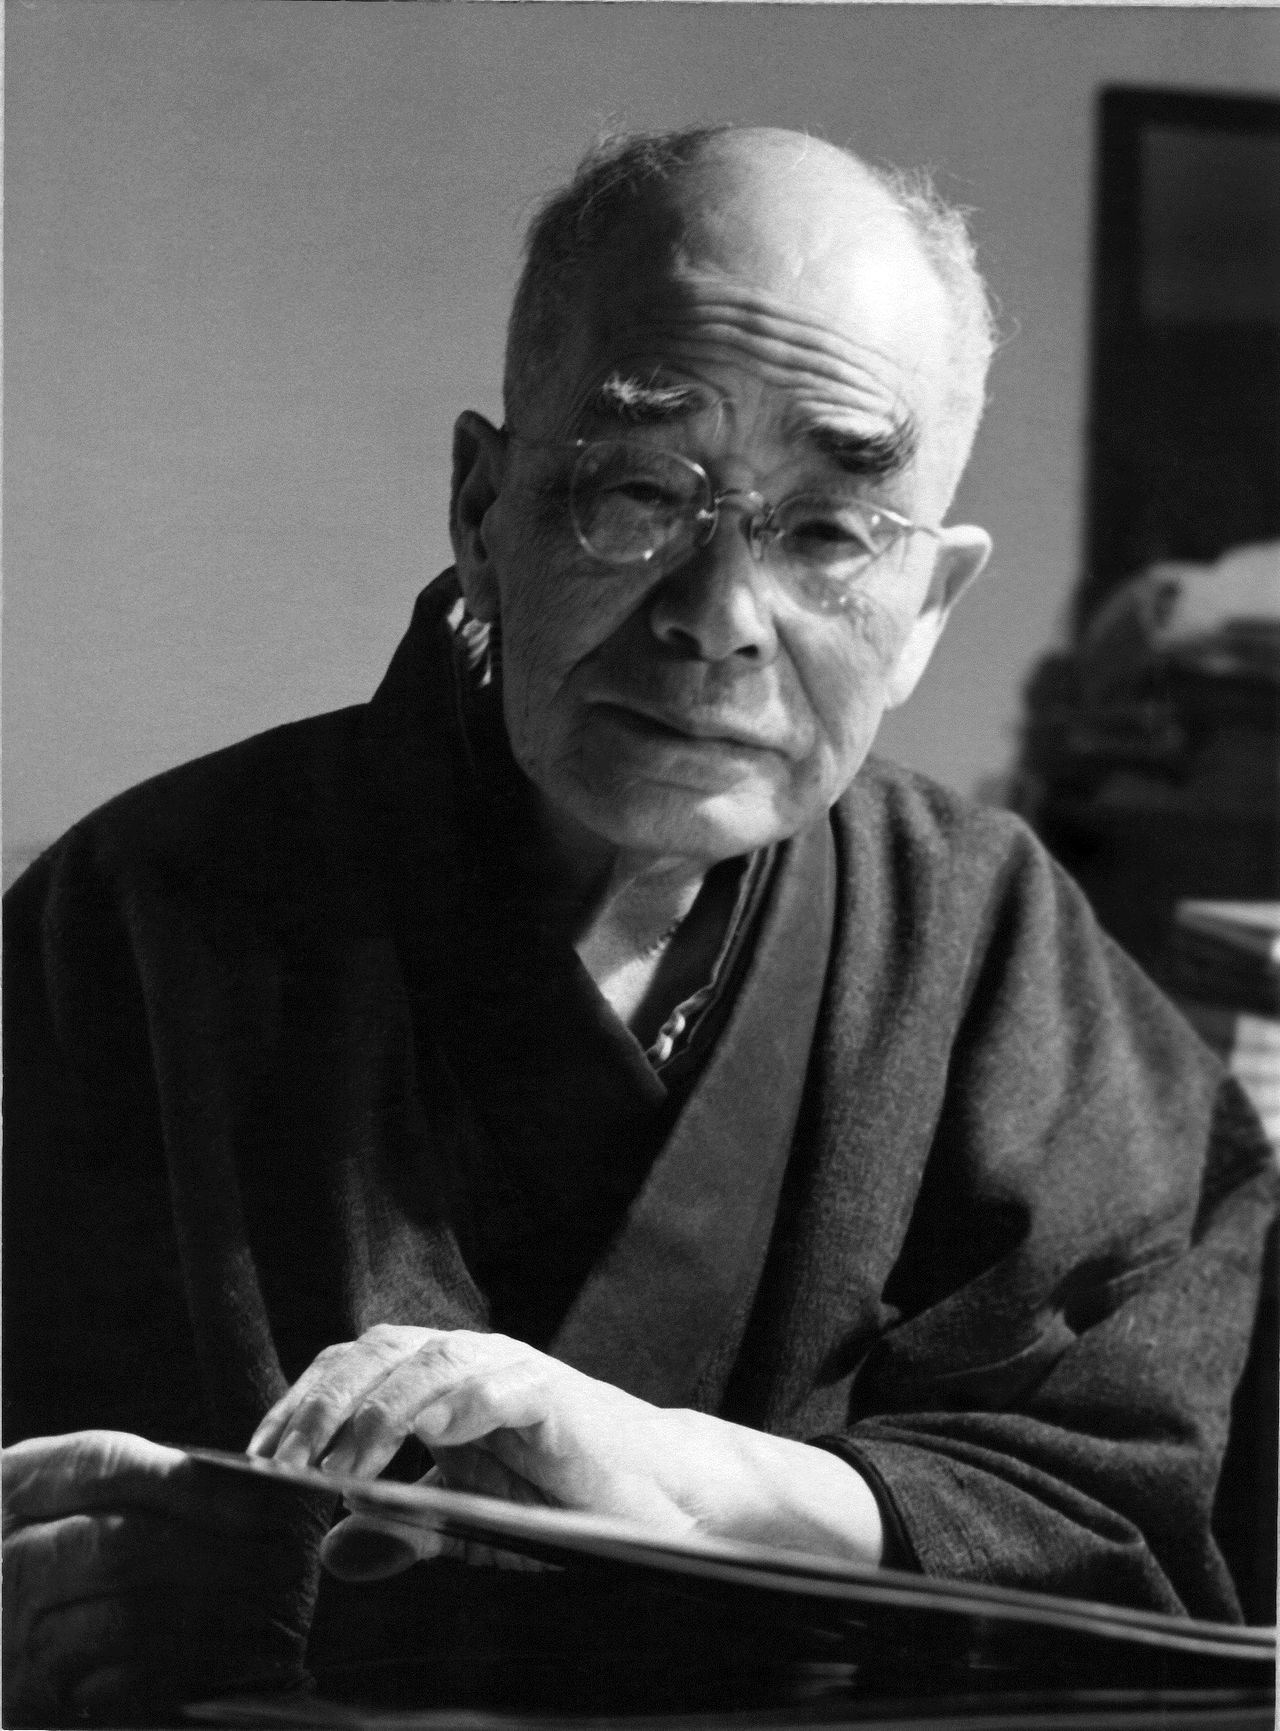 Suzuki spent the late 1950s in Kamakura, immersed in study. (© D. T. Suzuki Museum)